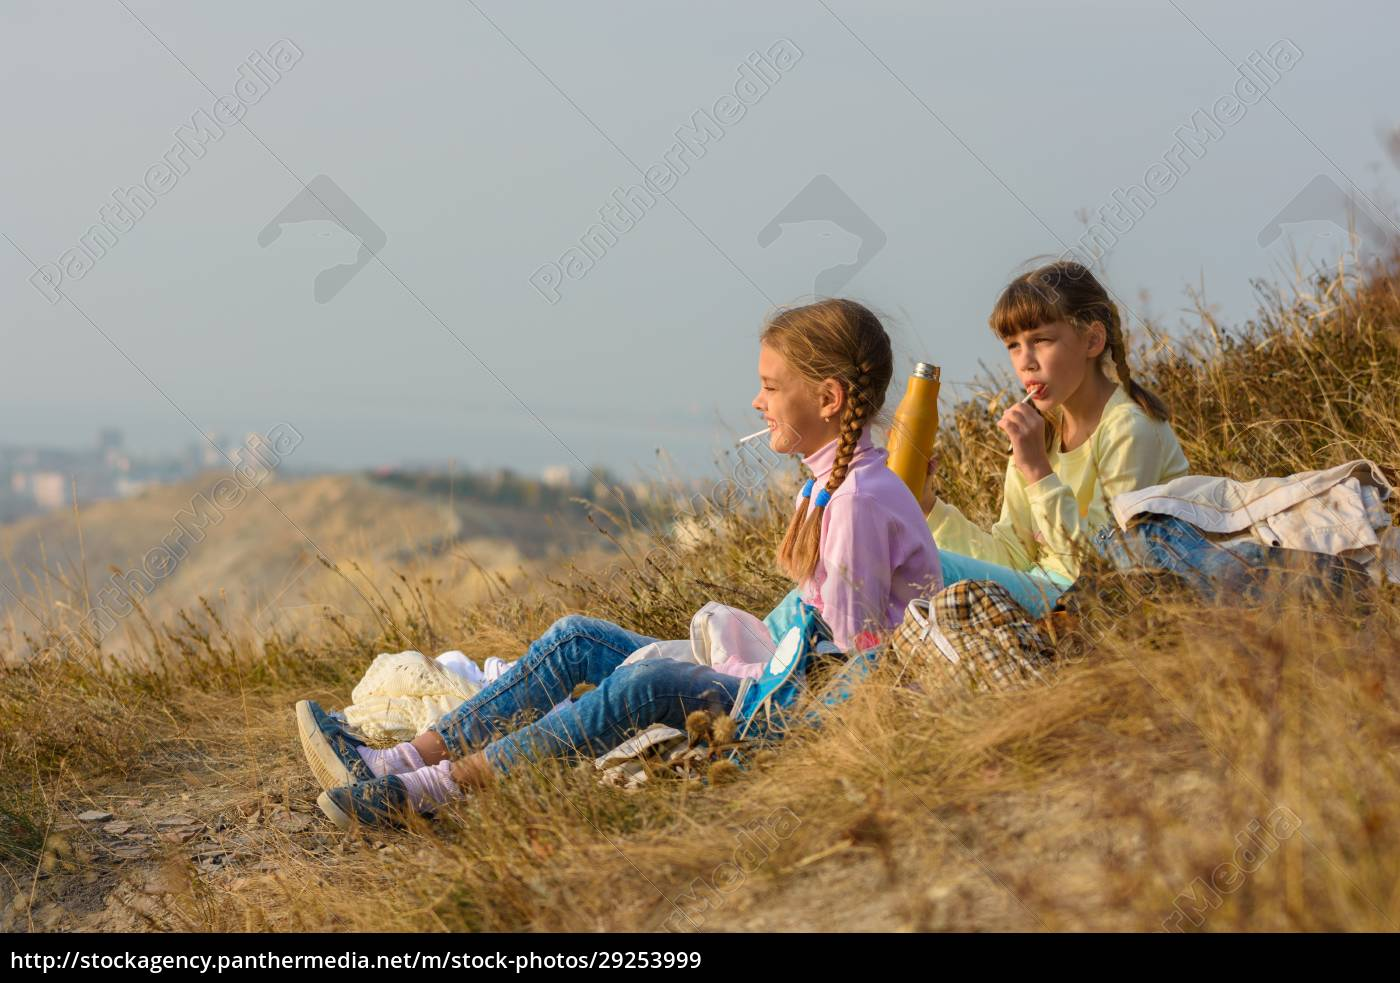 children, on, a, picnic, drink, water - 29253999